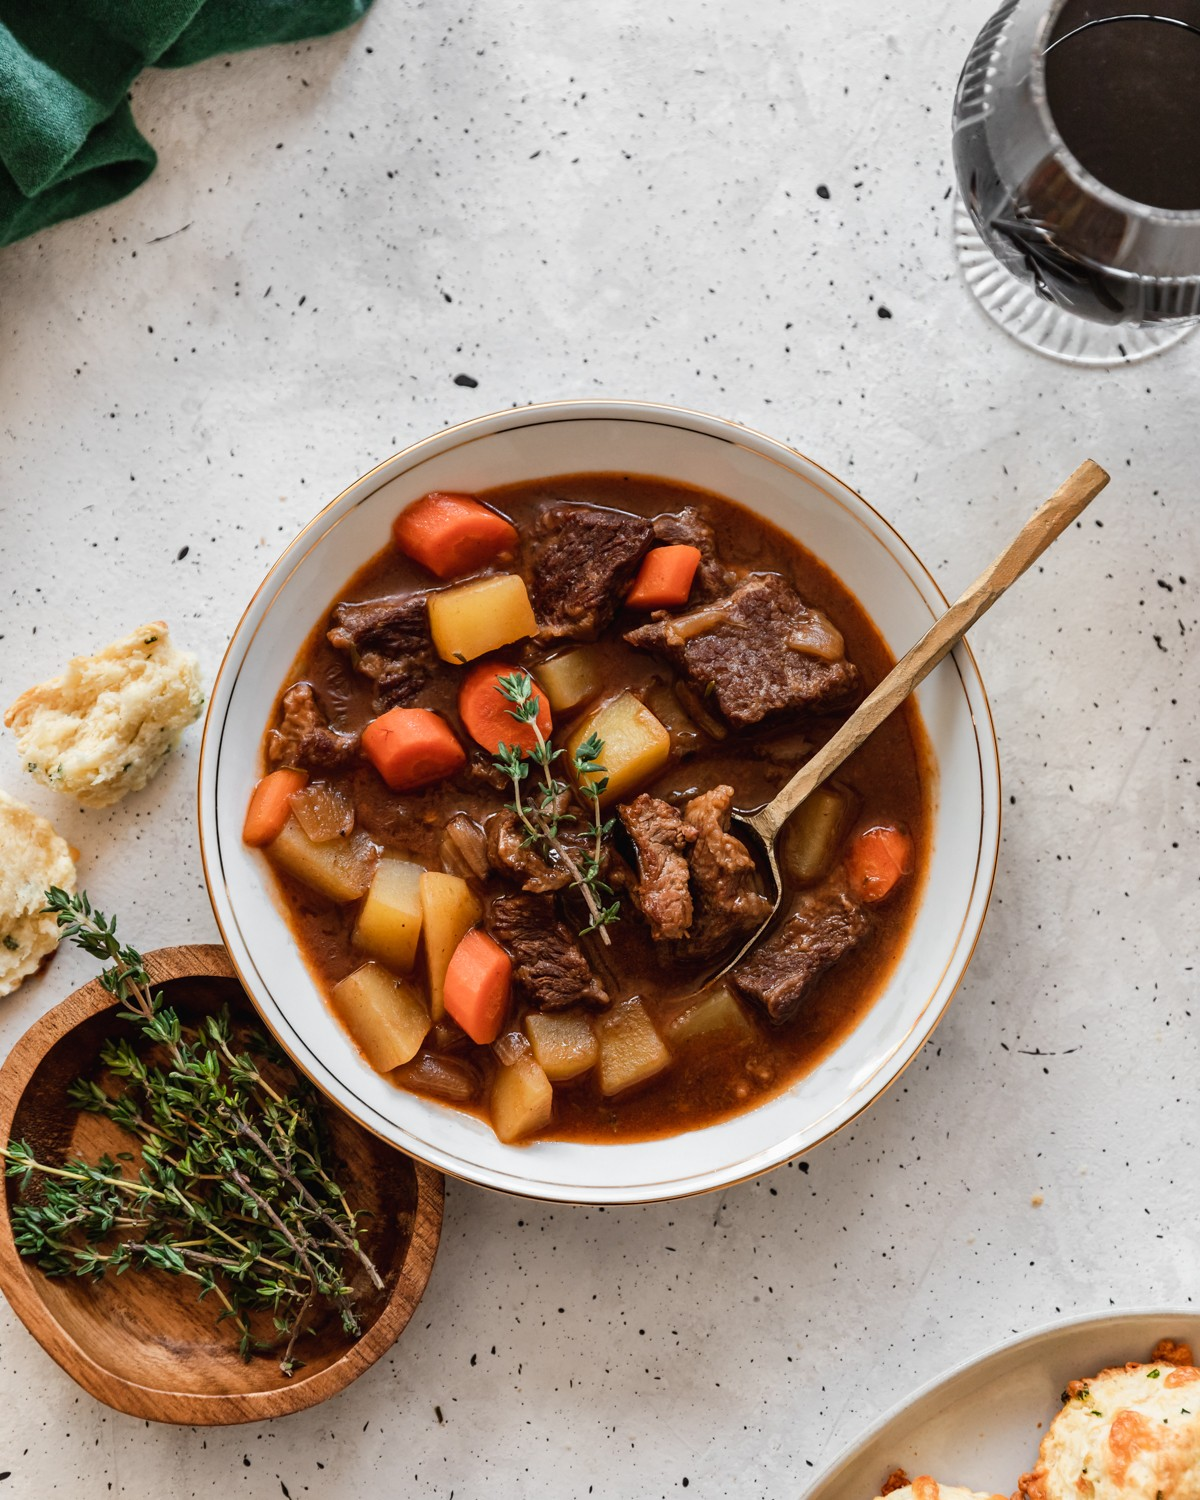 A closeup overhead image of Irish beef stew on a grey table next to a wooden bowl of thyme, a biscuit, and a glass of stout.